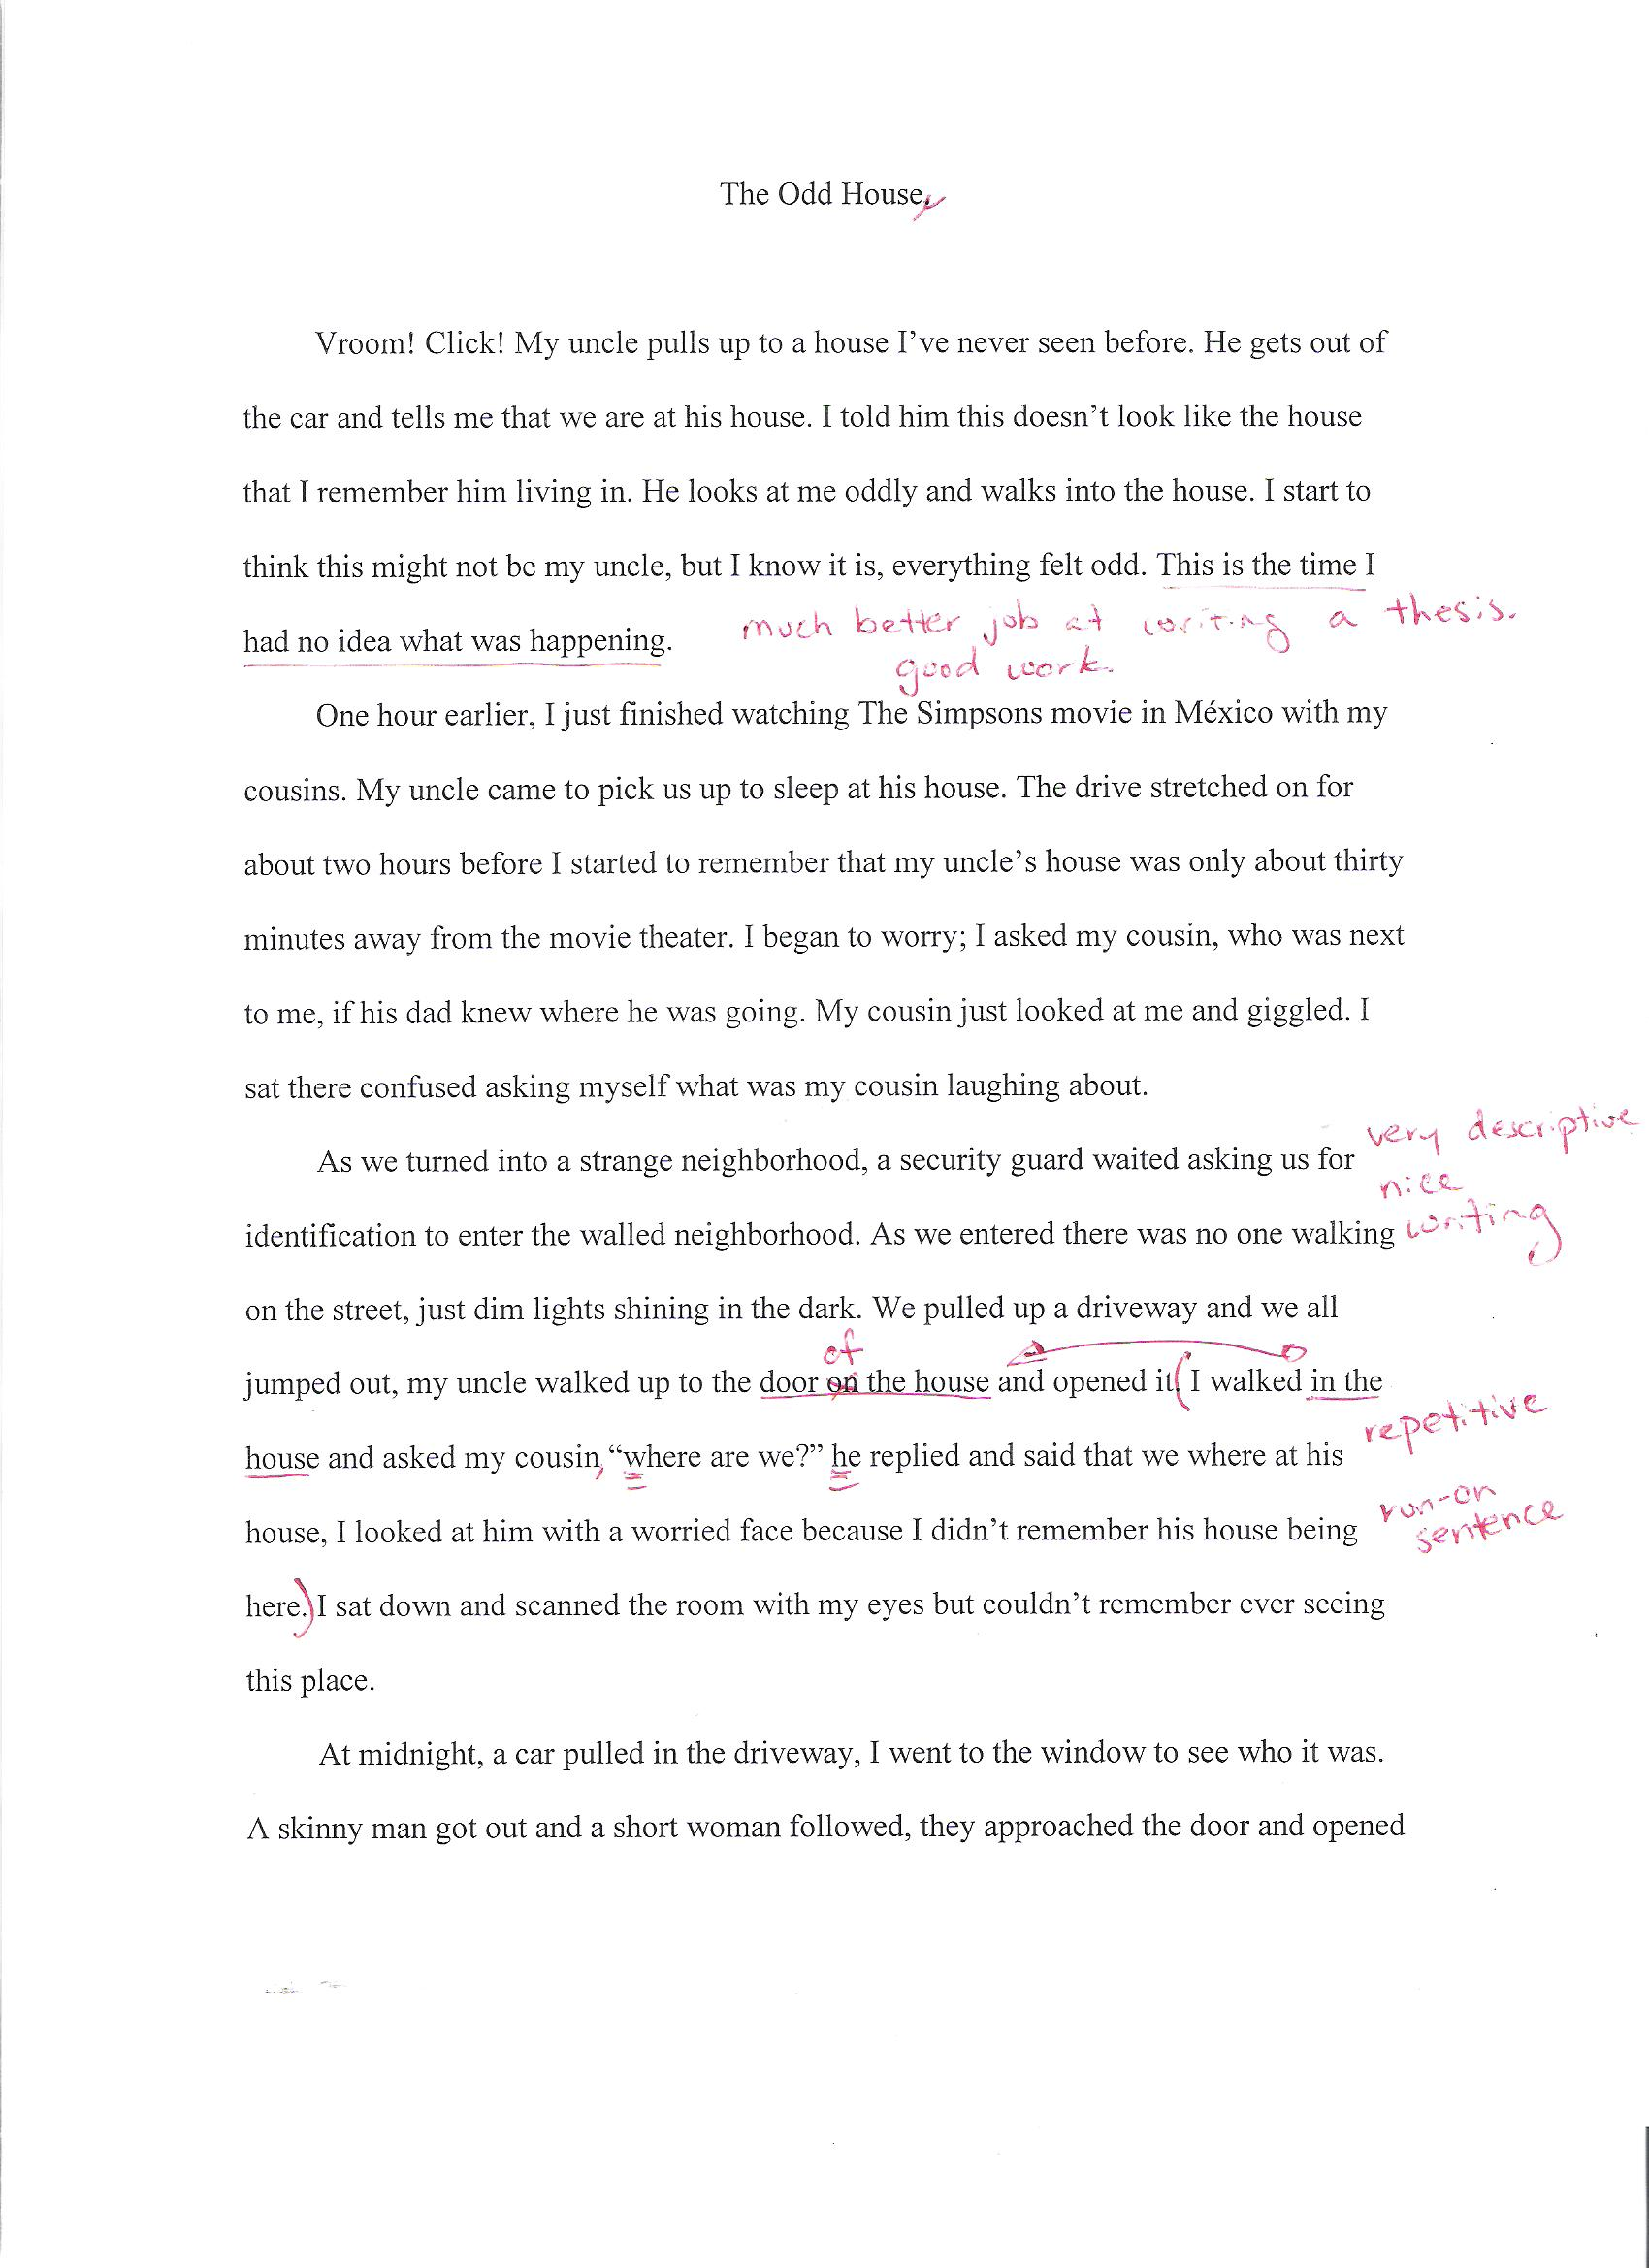 Independence Day Essay In English Autobiography Essay Writing An Autobiography Essay How To Write An  Politics And The English Language Essay also How To Write A Good Proposal Essay How To Write An Autobiographical Essay  Underfontanacountryinncom Analysis Essay Thesis